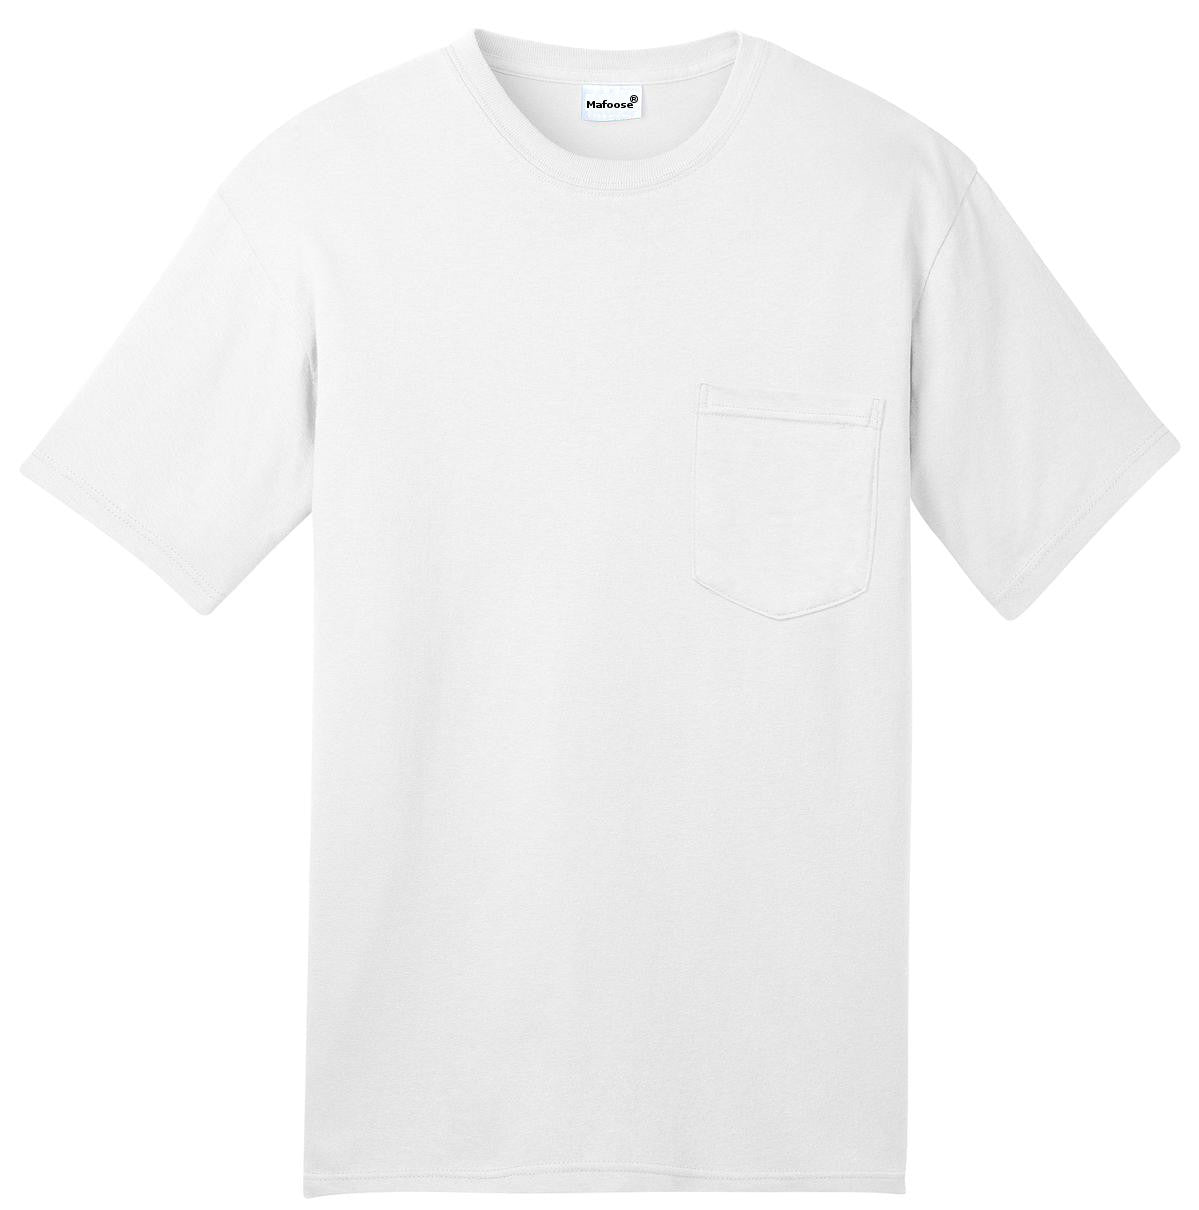 Mafoose Men's All American Tee Shirt with Pocket White-Front